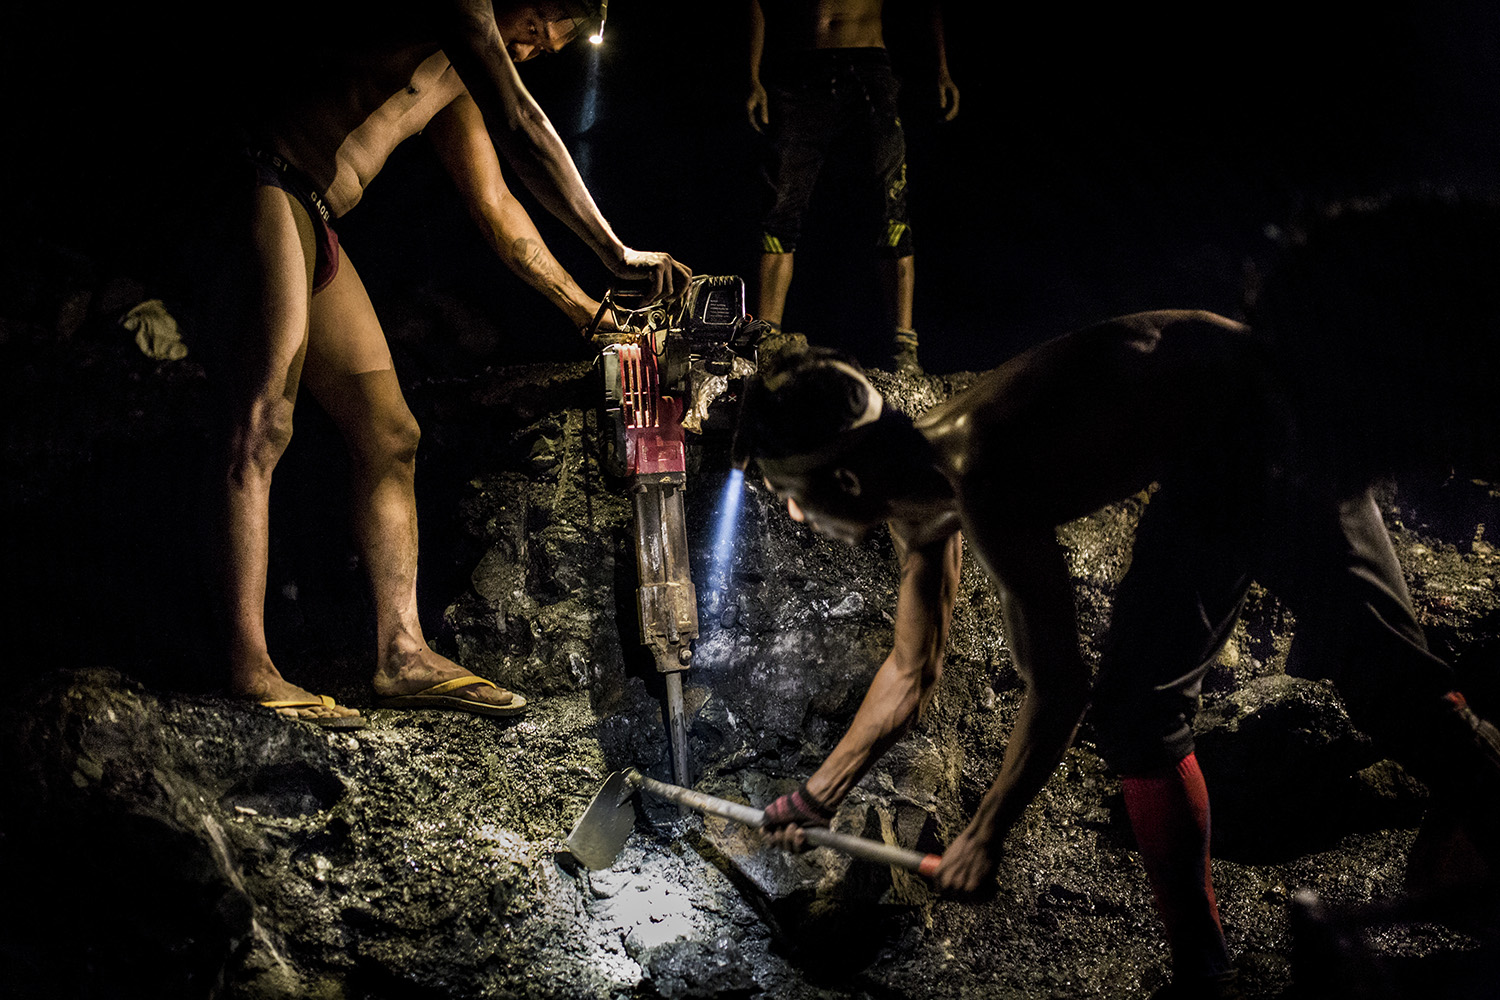 Miners use jackhammers and headlamps to search for jade at night in Hpakant on Aug. 15, 2018.